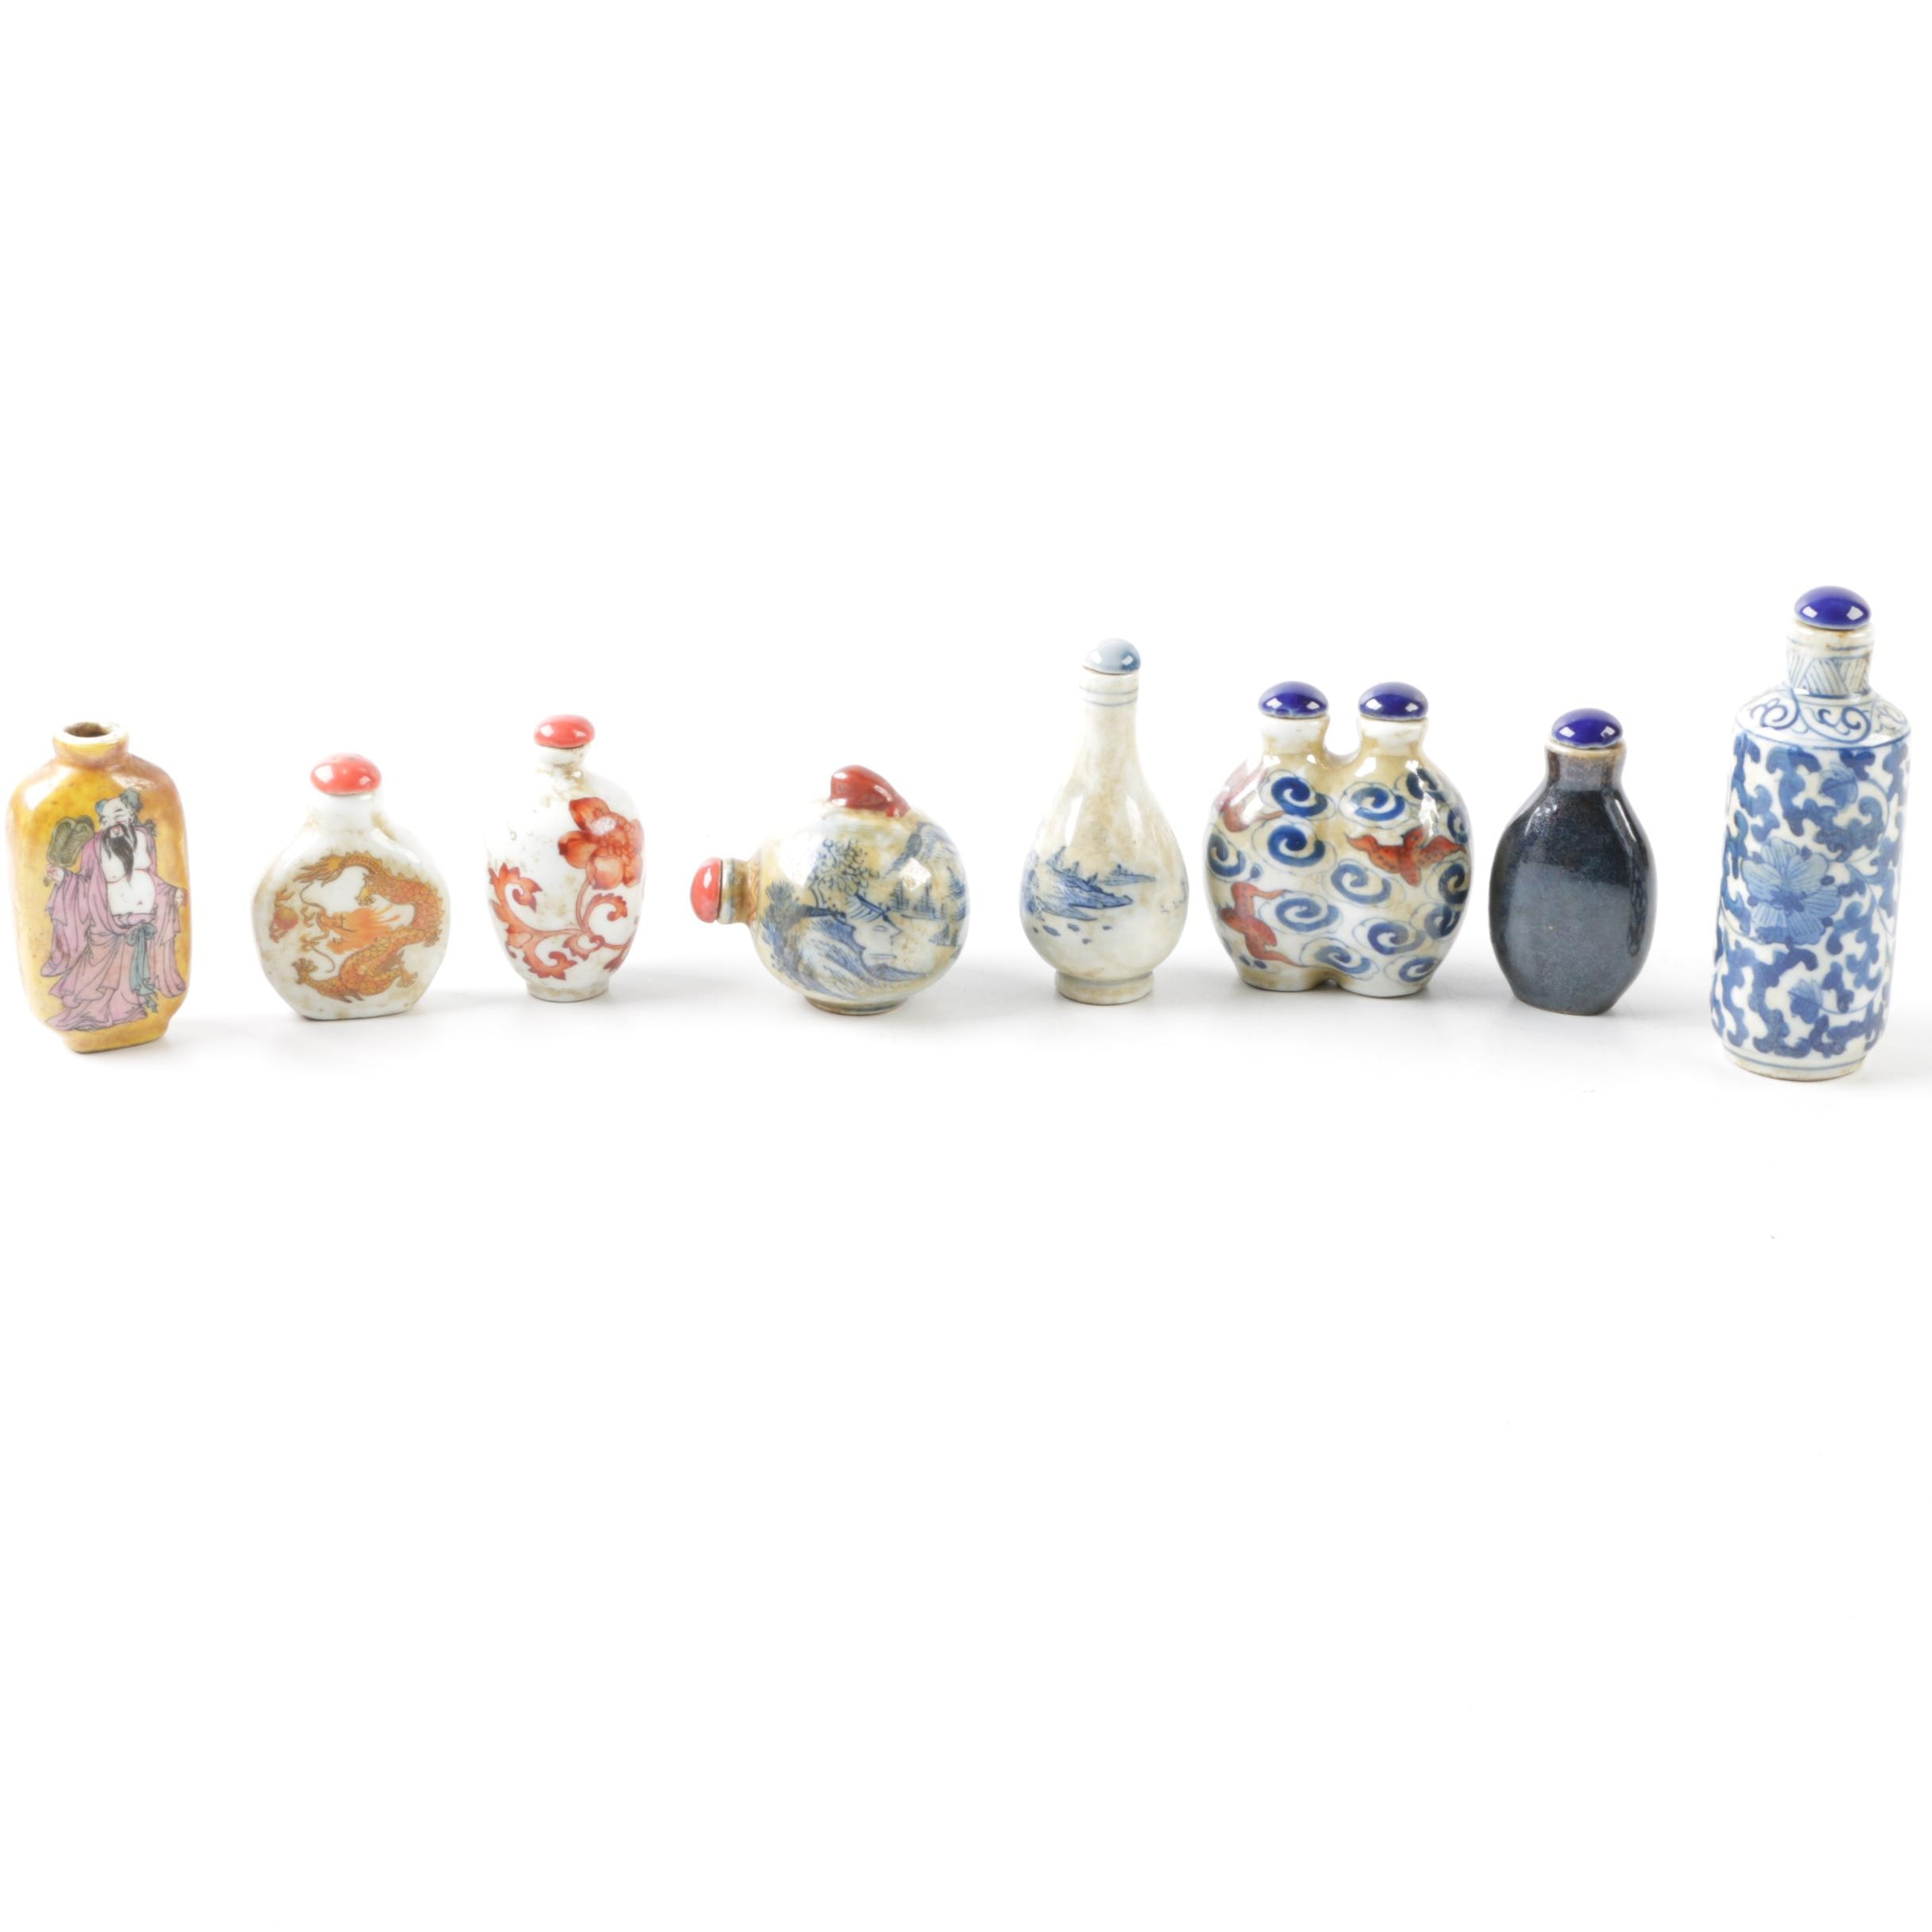 Eight Vintage Chinese Ceramic Snuff Bottles in Vase Shapes